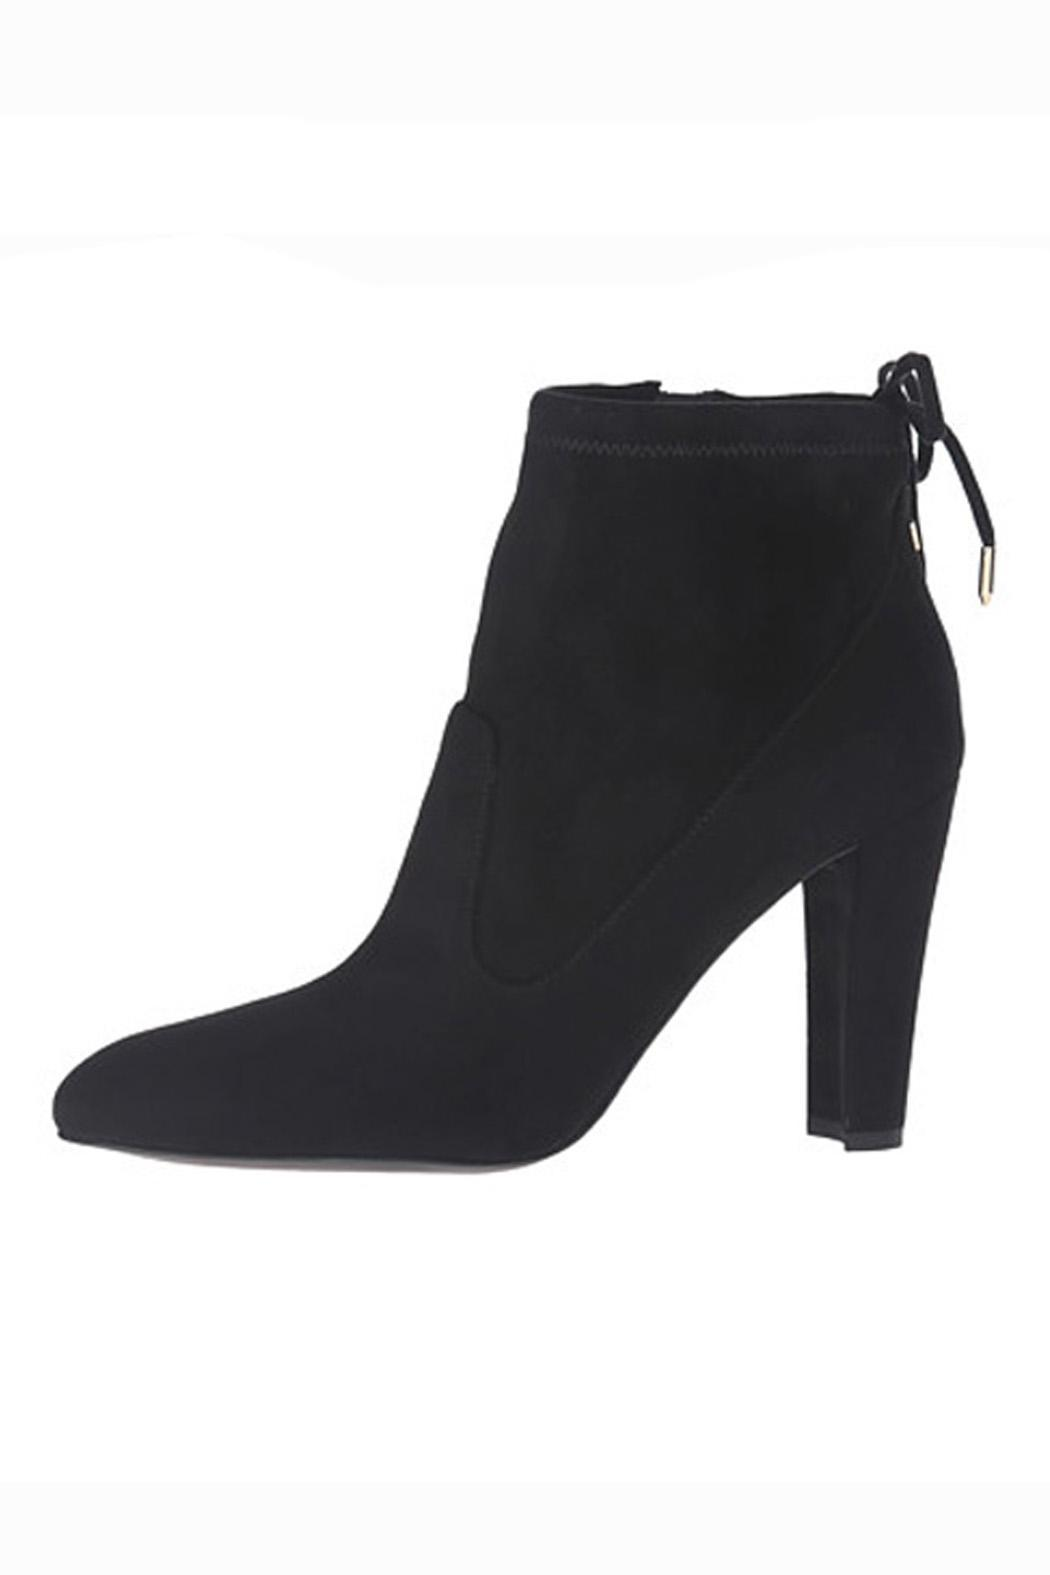 IVANKA TRUMP Black Suede Booties - Front Full Image